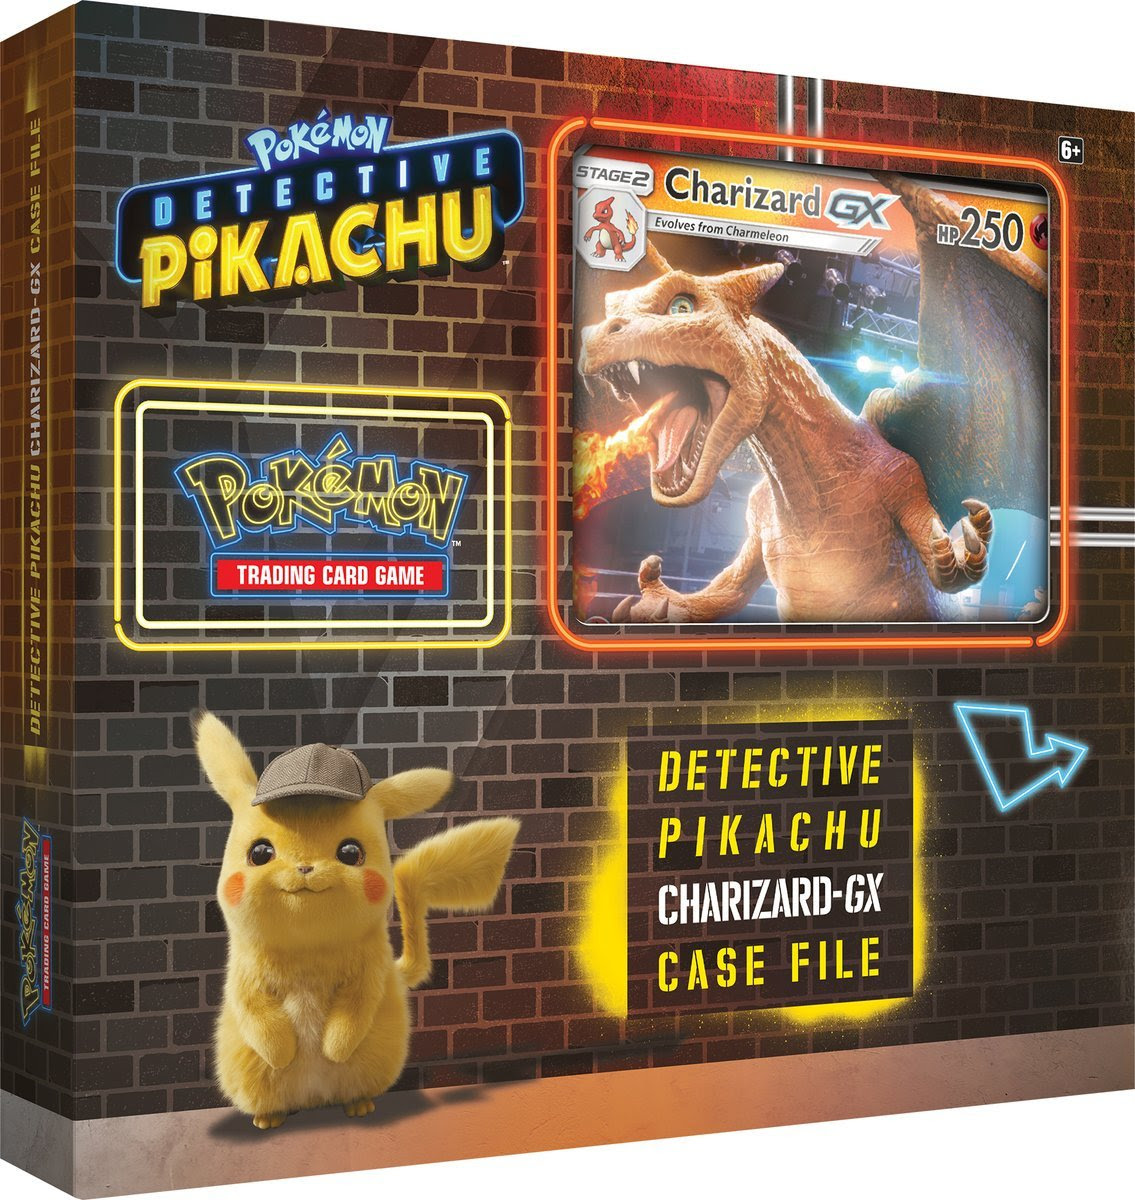 Here's Your First Look At The Special Detective Pikachu Pokémon Card Set - Nintendo Life